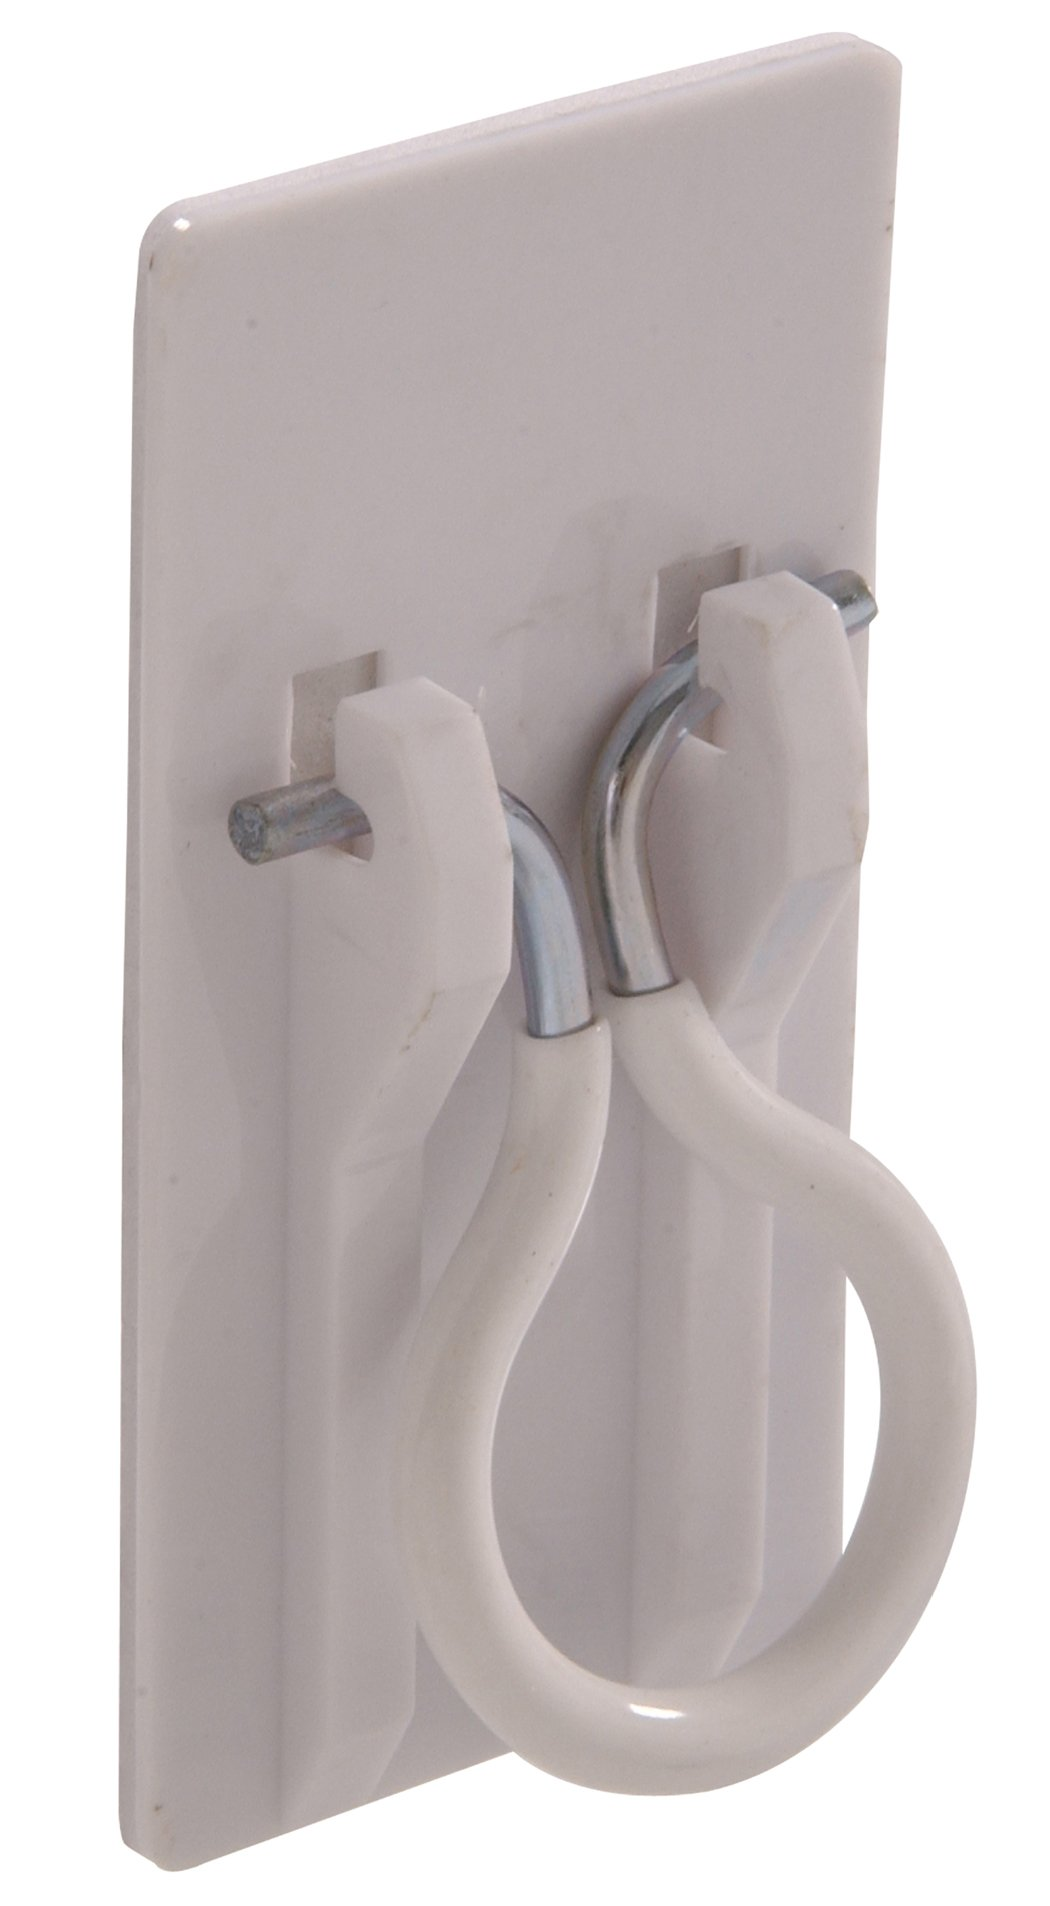 The Hillman Group 852988 Plastic Broom Holder- White - Adhesive Backed 1-Pack by The Hillman Group (Image #1)